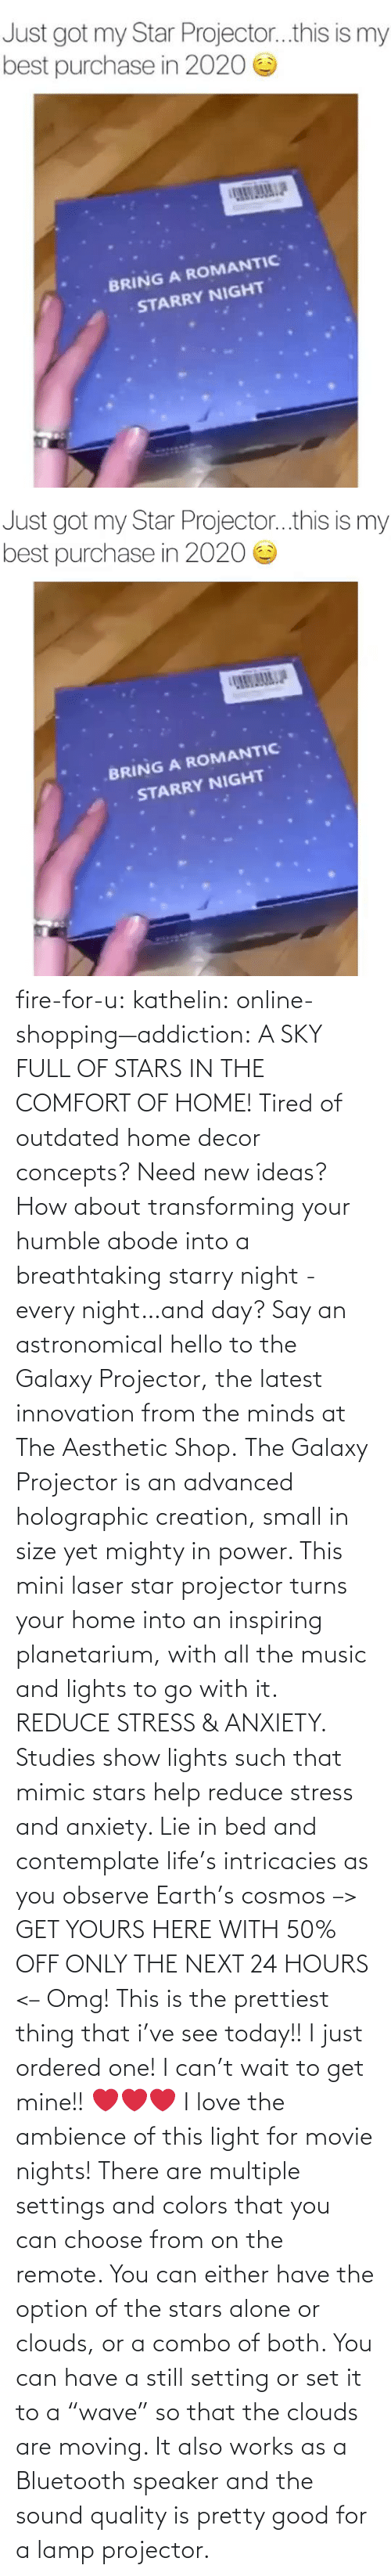 "omg: fire-for-u:  kathelin: online-shopping—addiction:  A SKY FULL OF STARS IN THE COMFORT OF HOME! Tired of outdated home decor concepts? Need new ideas? How about transforming your humble abode into a breathtaking starry night - every night…and day? Say an astronomical hello to the Galaxy Projector, the latest innovation from the minds at The Aesthetic Shop. The Galaxy Projector is an advanced holographic creation, small in size yet mighty in power. This mini laser star projector turns your home into an inspiring planetarium, with all the music and lights to go with it. REDUCE STRESS & ANXIETY. Studies show lights such that mimic stars help reduce stress and anxiety. Lie in bed and contemplate life's intricacies as you observe Earth's cosmos  –> GET YOURS HERE WITH 50% OFF ONLY THE NEXT 24 HOURS <–   Omg! This is the prettiest thing that i've see today!! I just ordered one! I can't wait to get mine!! ❤️️❤️️❤️️  I love the ambience of this light for movie nights! There are multiple settings and colors that you can choose from on the remote. You can either have the option of the stars alone or clouds, or a combo of both. You can have a still setting or set it to a ""wave"" so that the clouds are moving. It also works as a Bluetooth speaker and the sound quality is pretty good for a lamp projector."